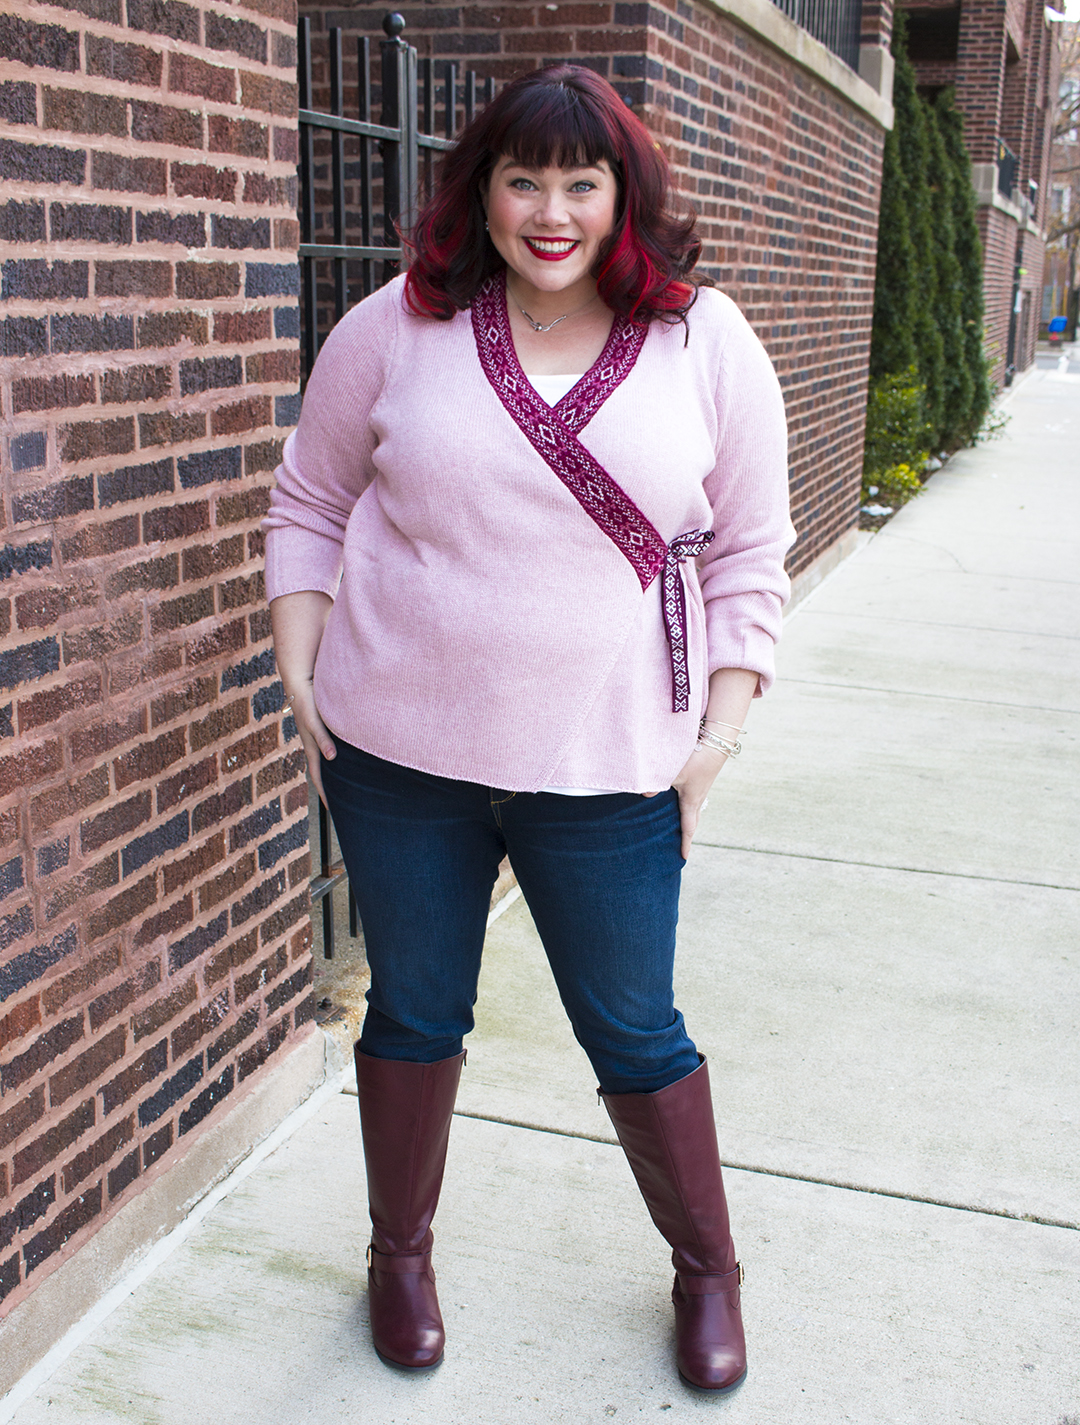 Plus Size Blogger Amber from Style Plus Curves wearing a pink Ellos plus size sweater from Fullbeauty.com